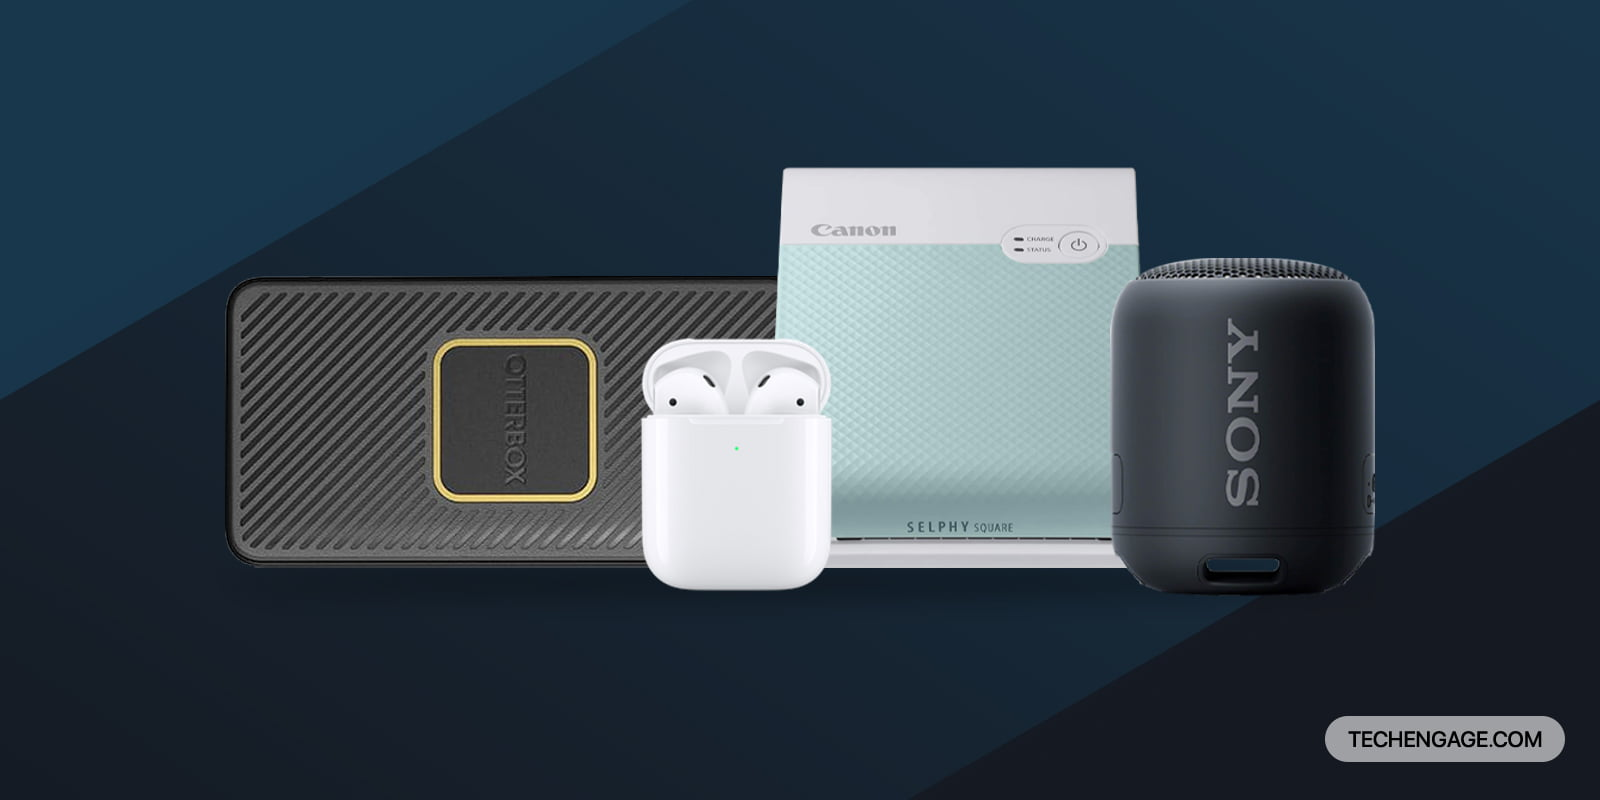 Top tech gifts for your tech-savvy friends